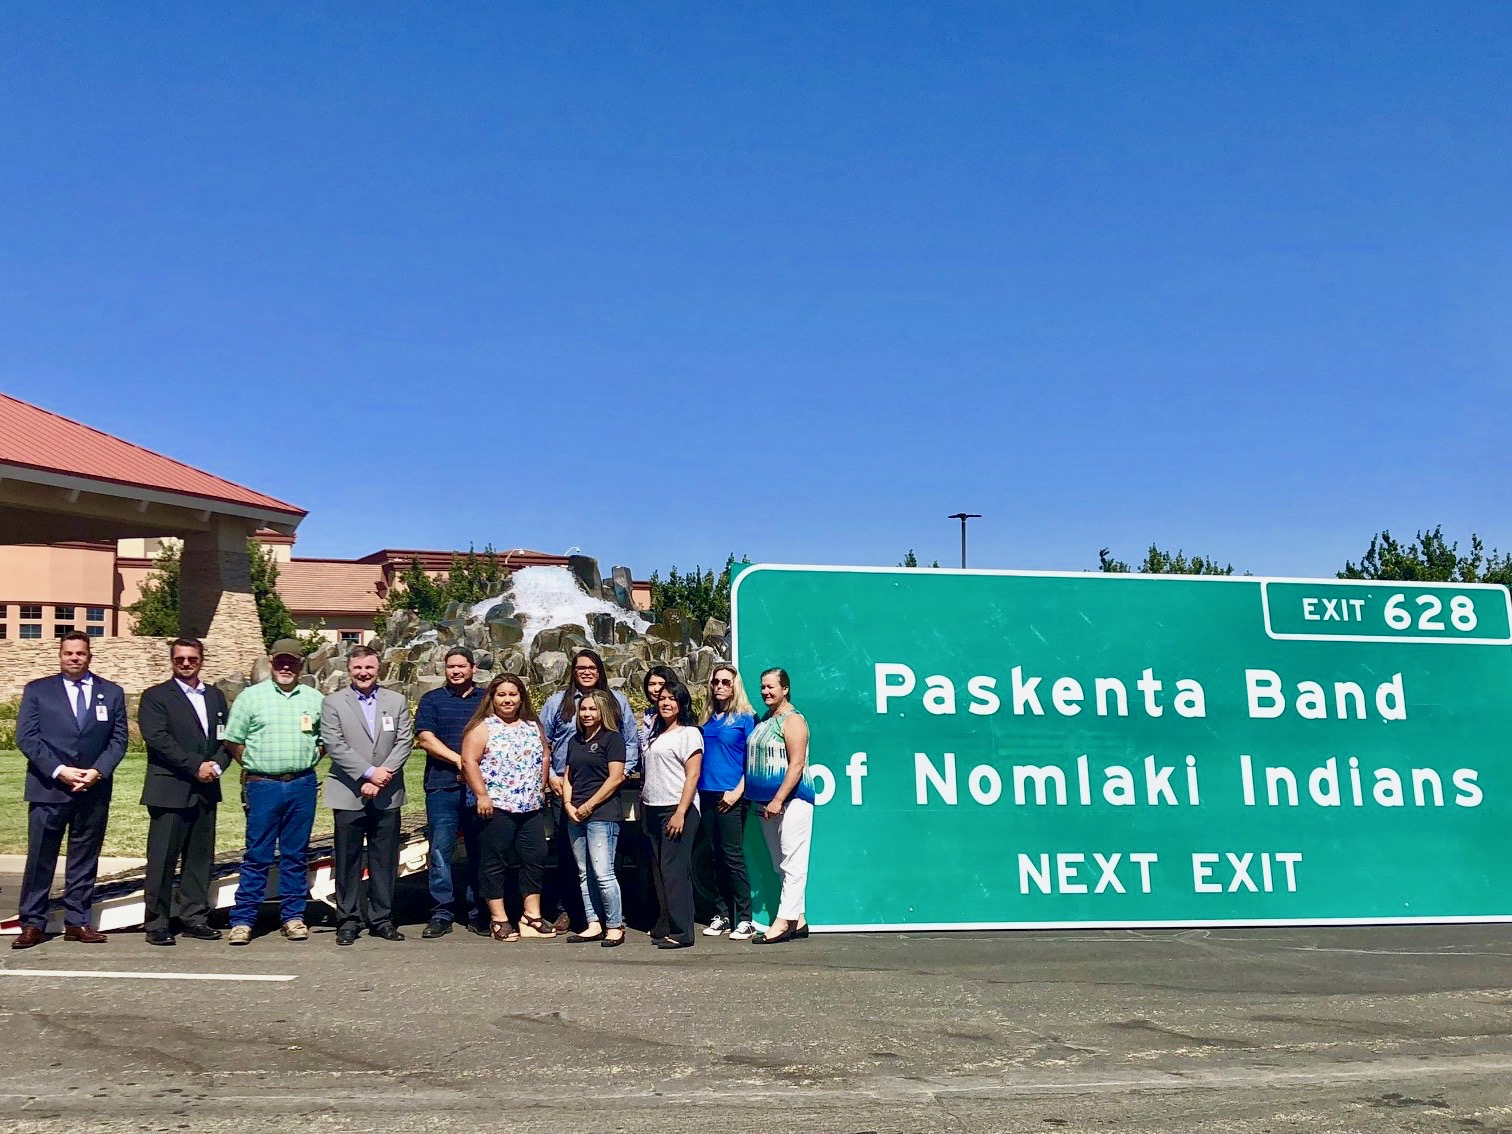 'The reservation is our homeland': Paskenta Band dedicates highway signs